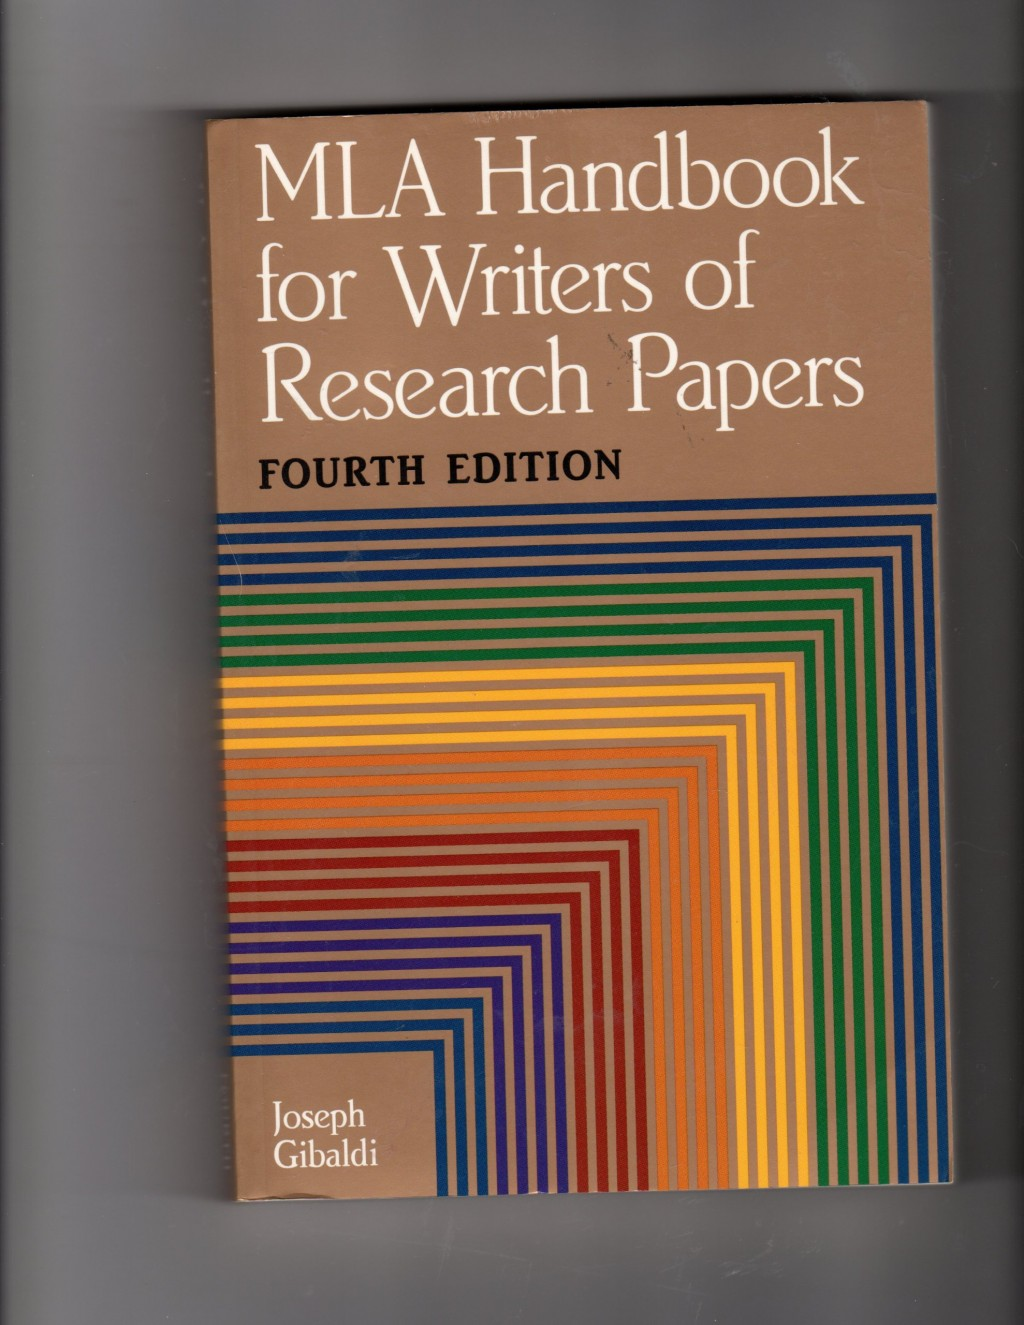 002 91or7esc2gl Research Paper Mla Handbook For Writers Of Papers 8th Unique Edition Pdf Free Download Large